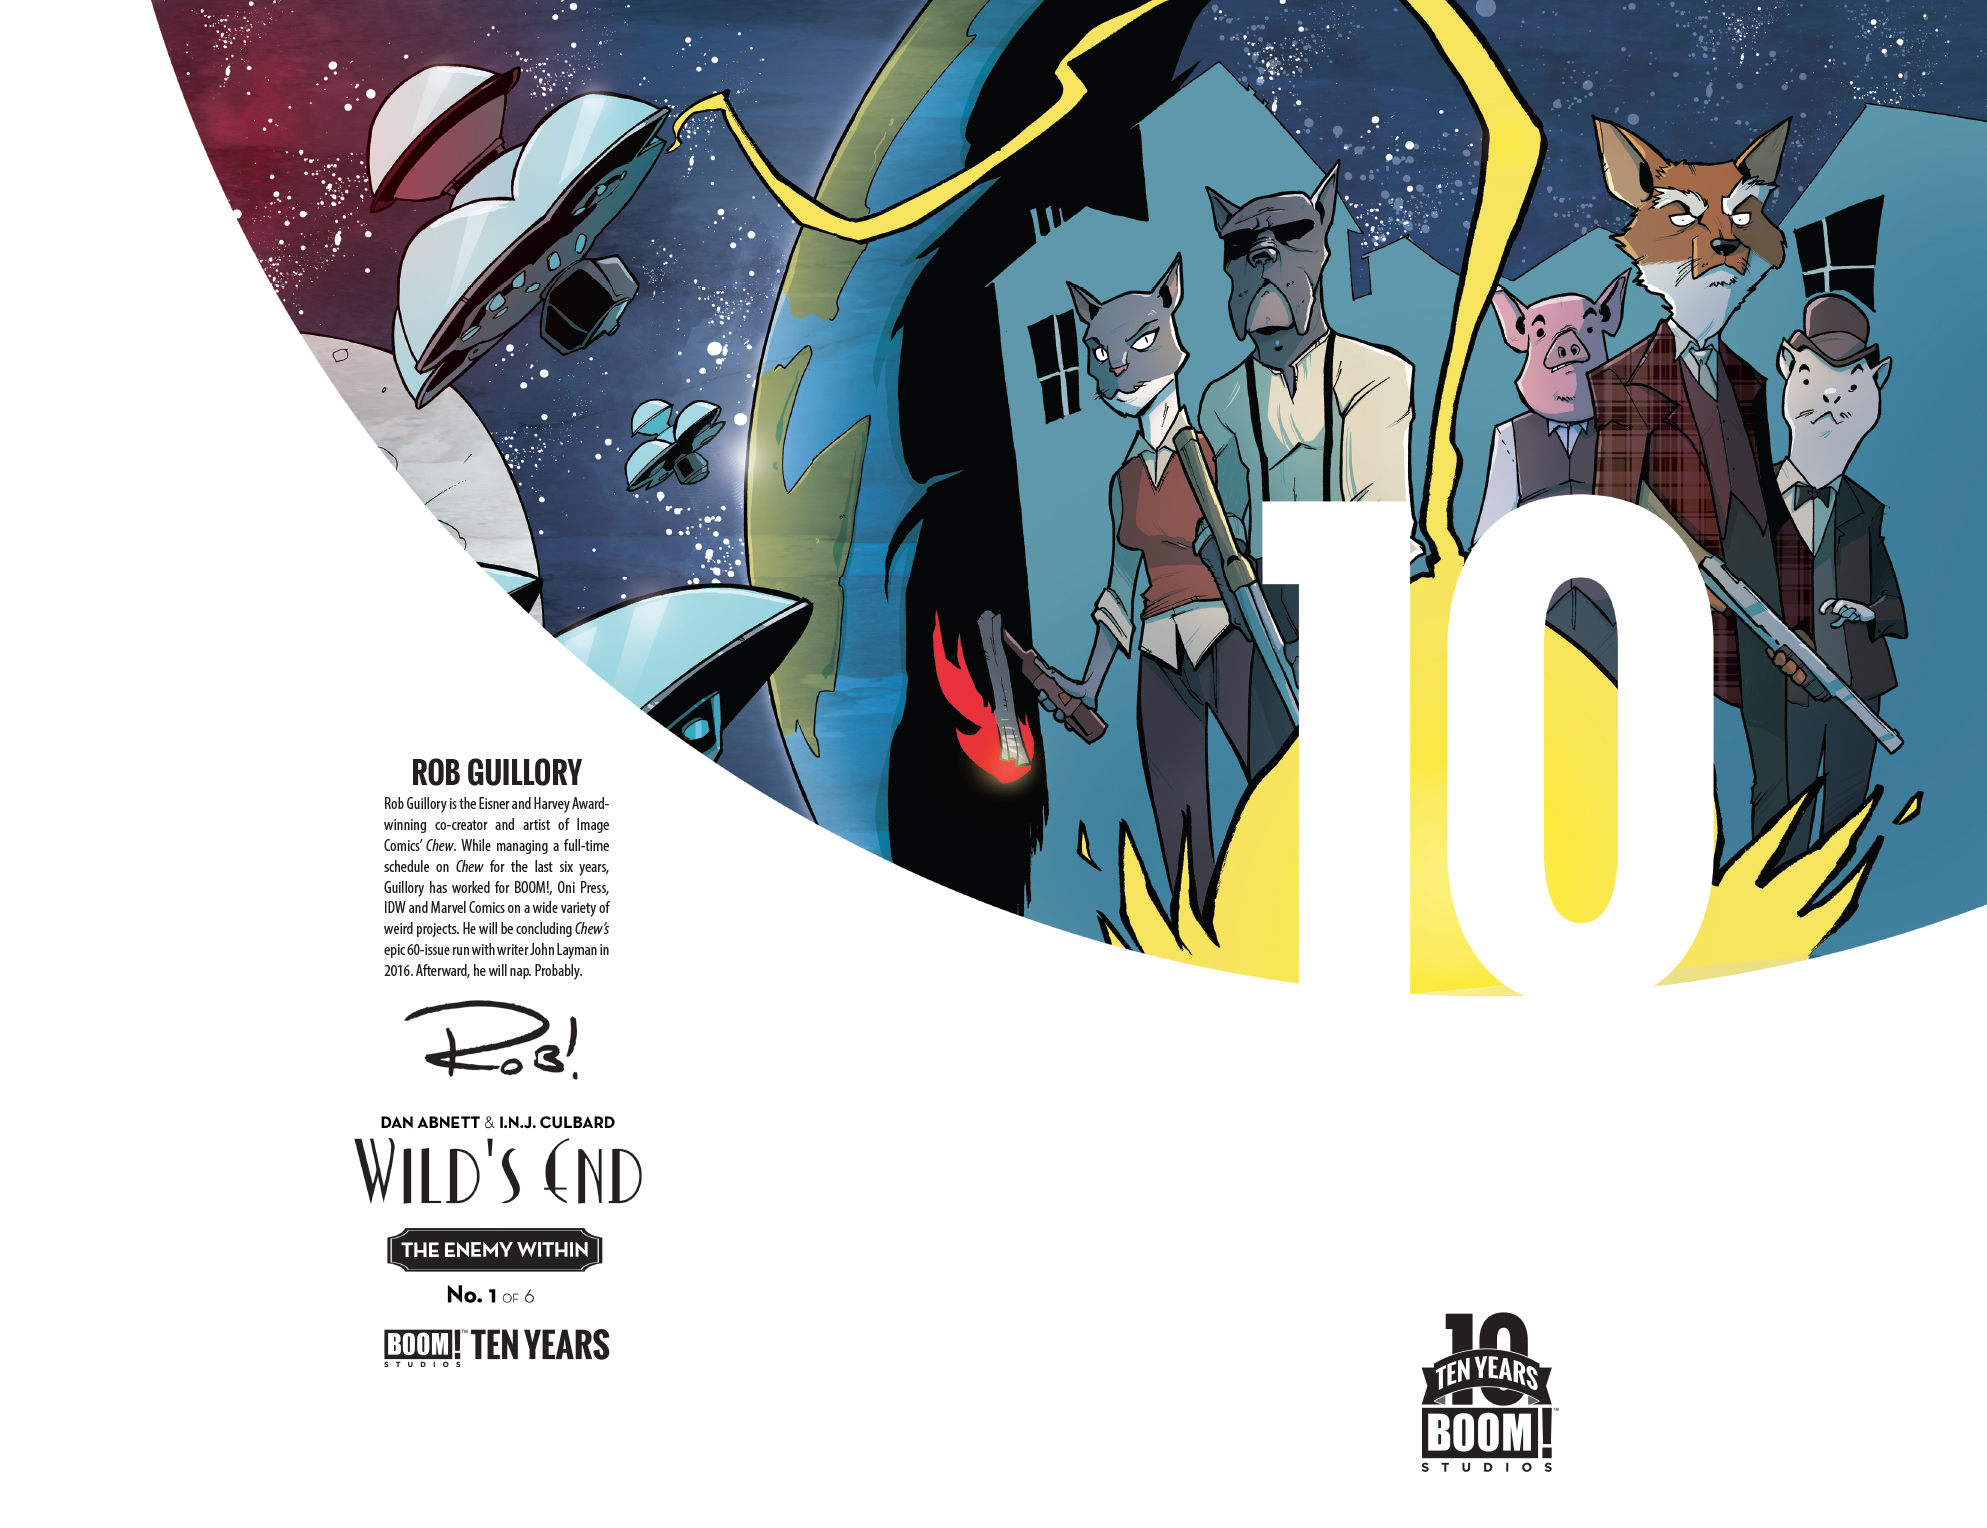 Wild's End: The Enemy Within 10 Years Cover